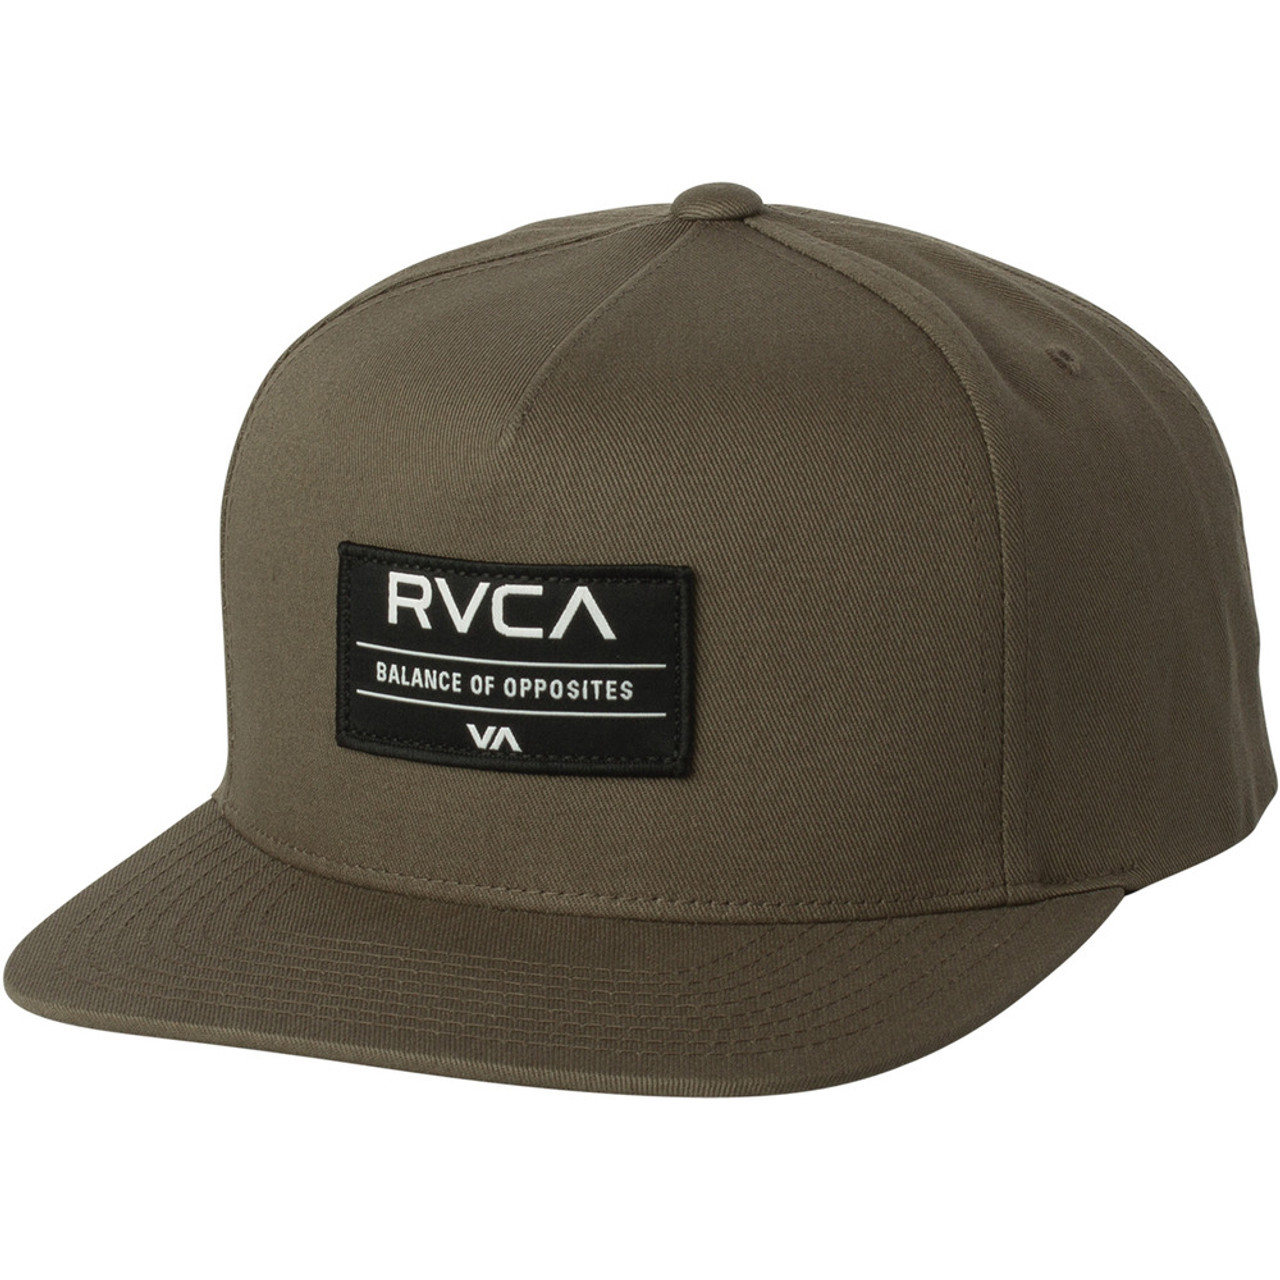 682f9203 RVCA Hat - Territory Snapback - Dark Khaki - Surf and Dirt